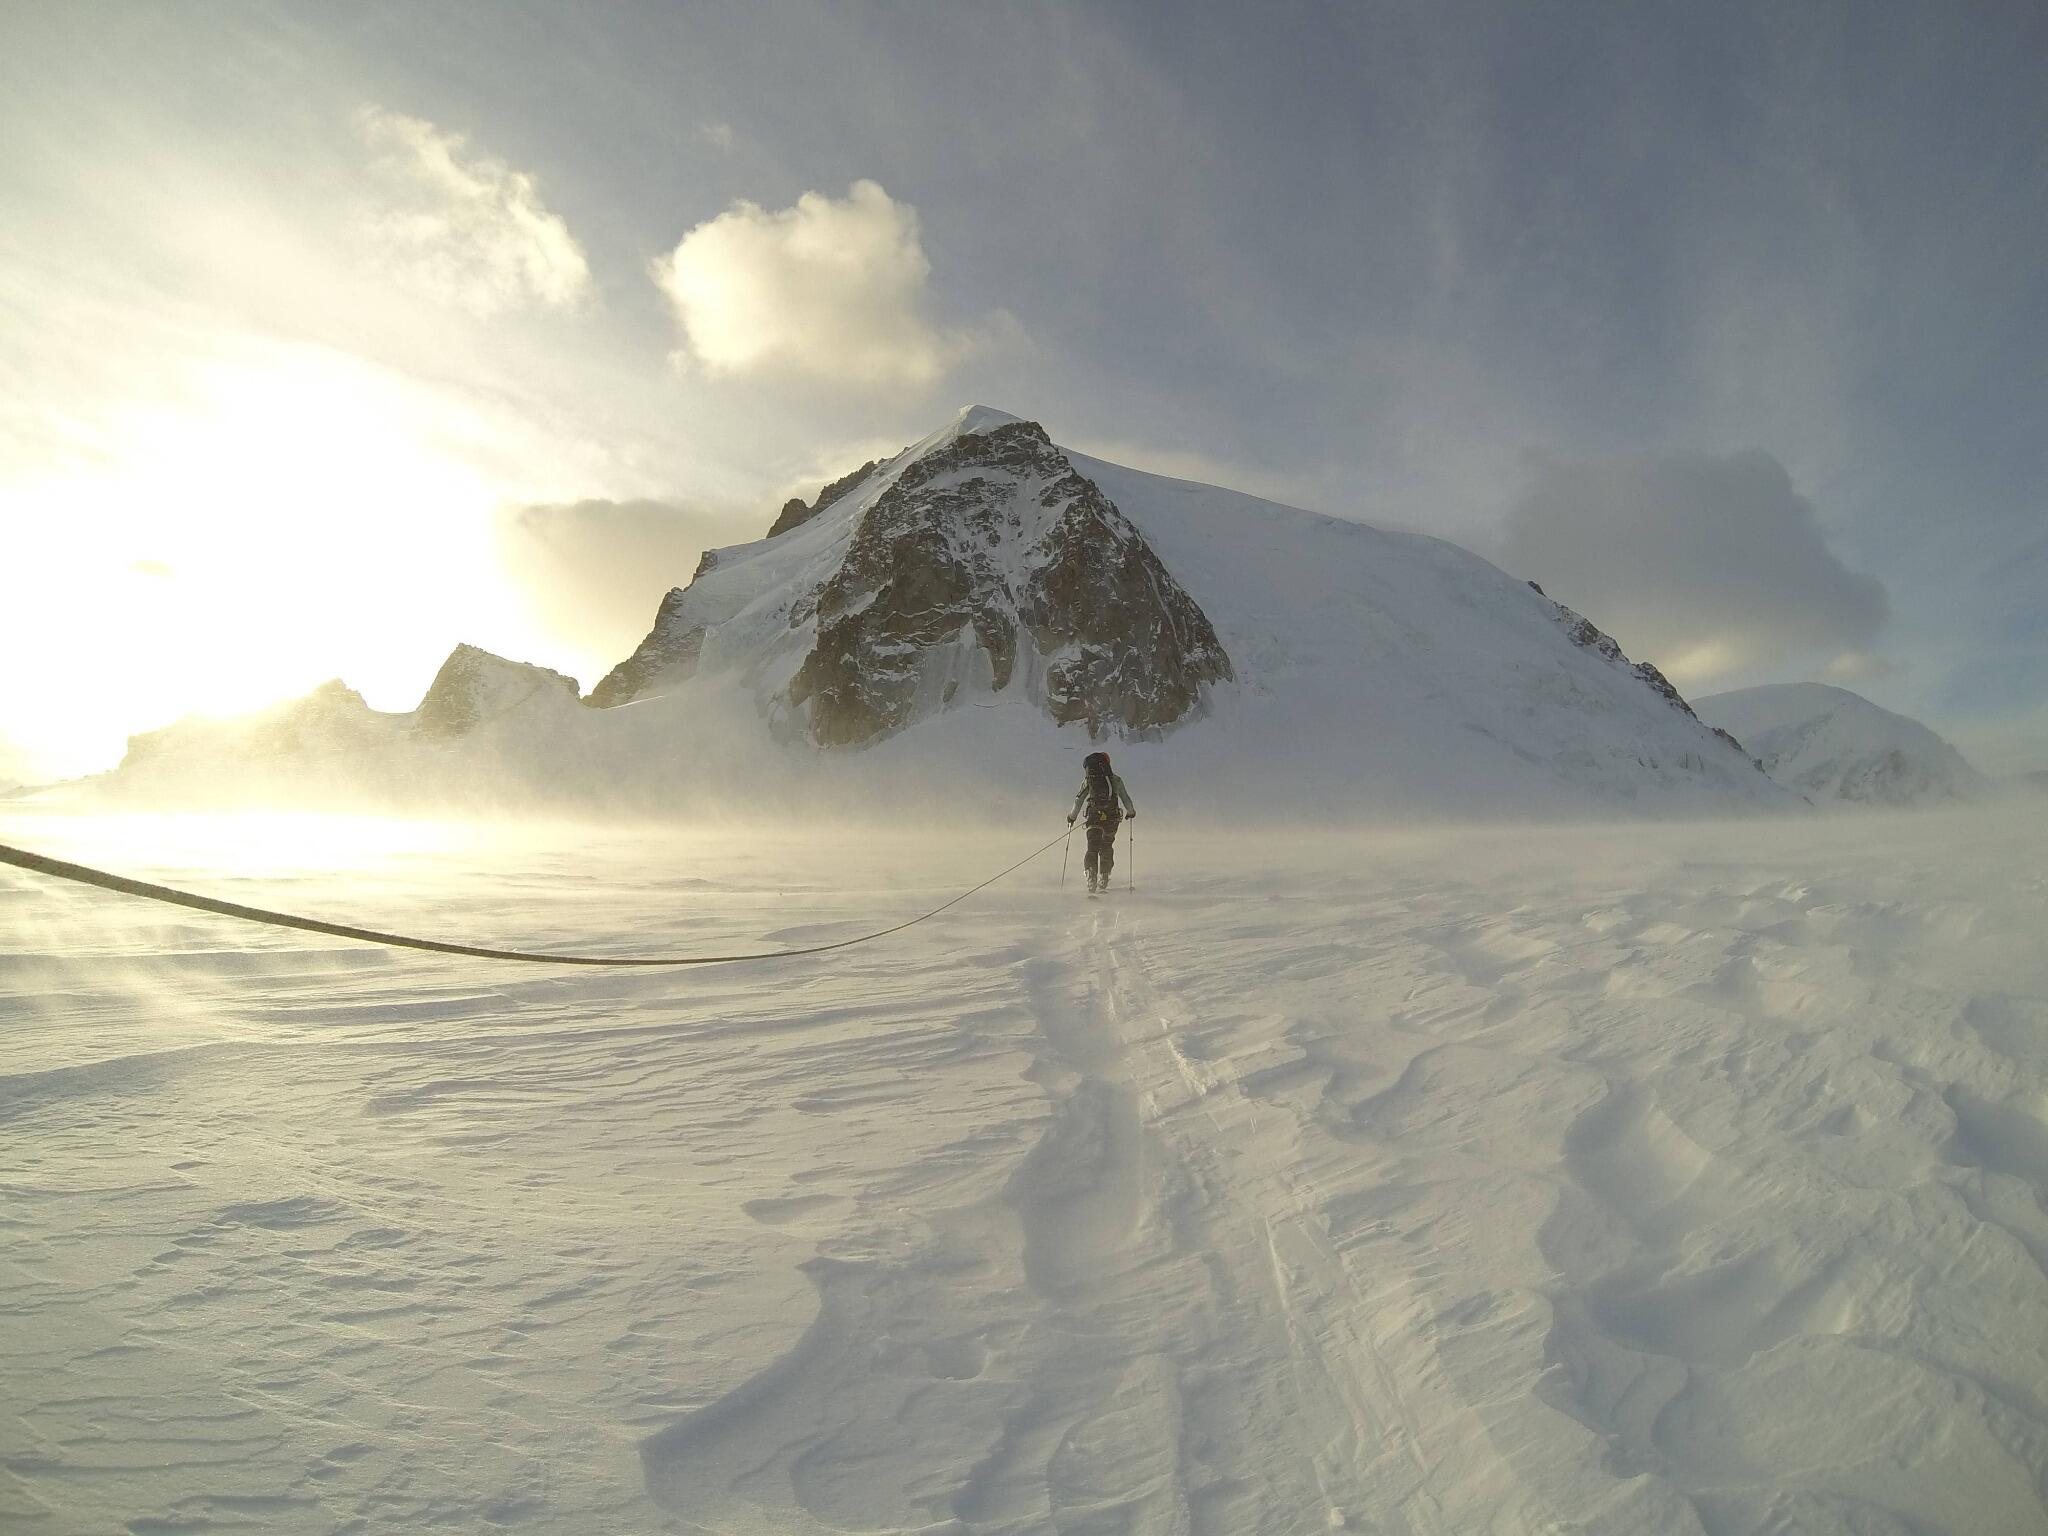 A cinematic moment, captured on Mont Blanc Massif with filmmaker @bjarnesalen and skier @ndreasfransson. http://t.co/cSpqgSKiIM